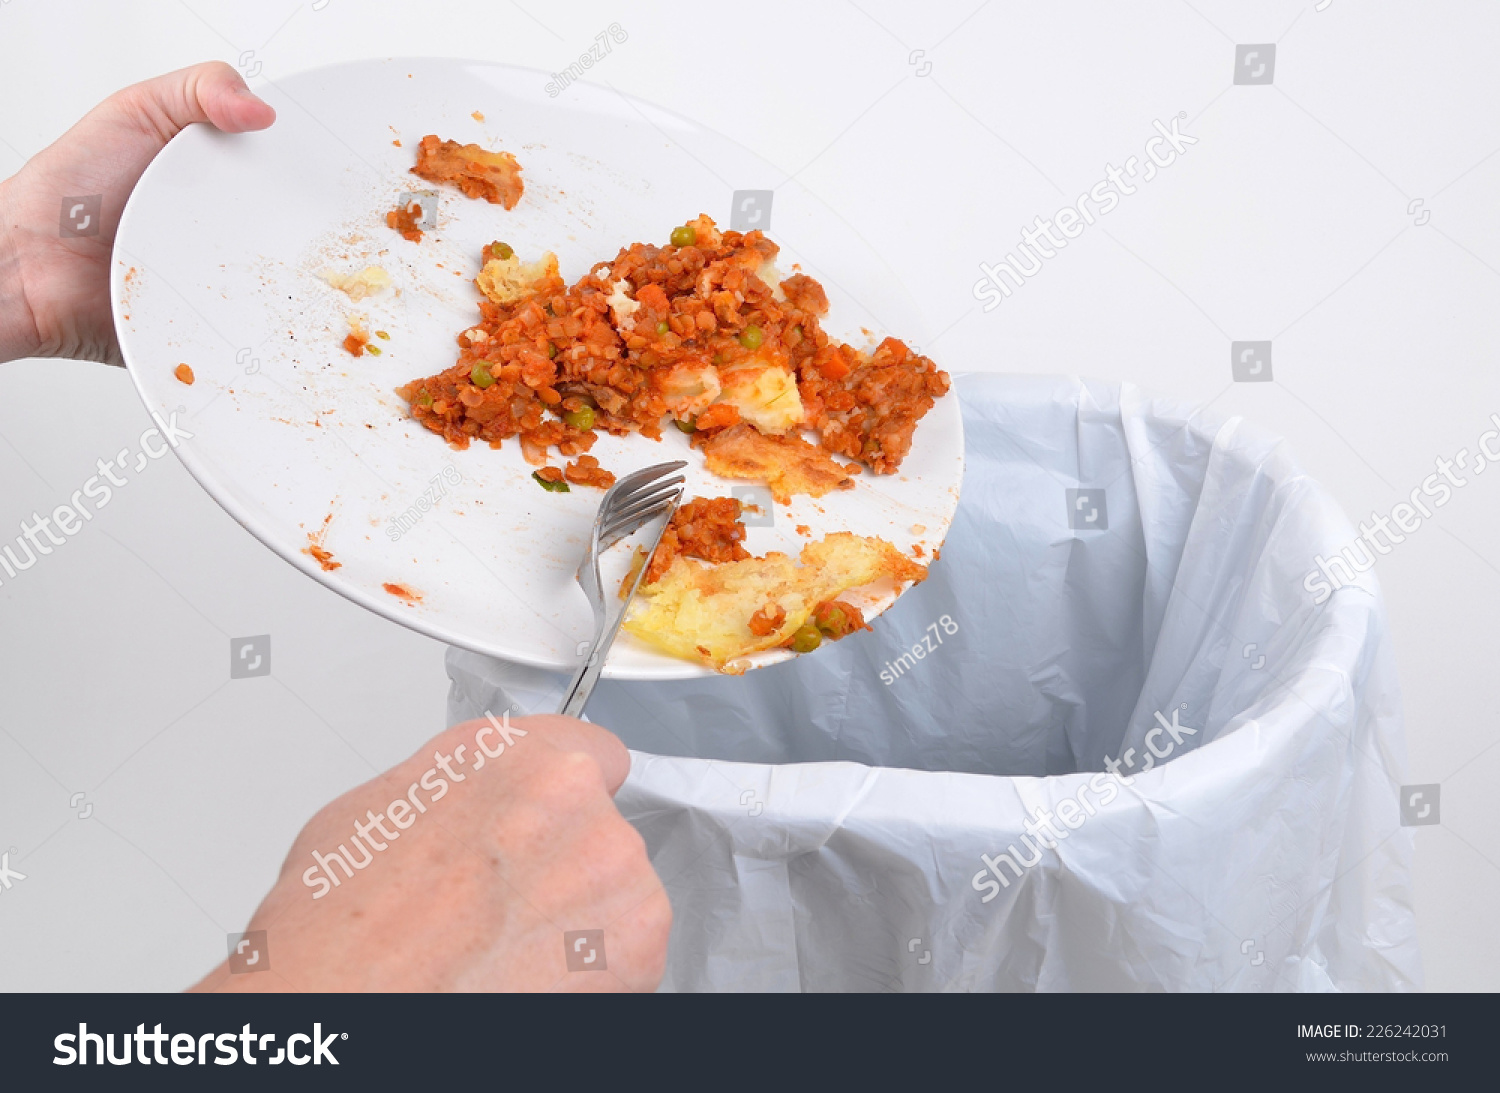 scraping food waste plate into garbage stock photo no dirty dishes clipart dirty dishes clipart free